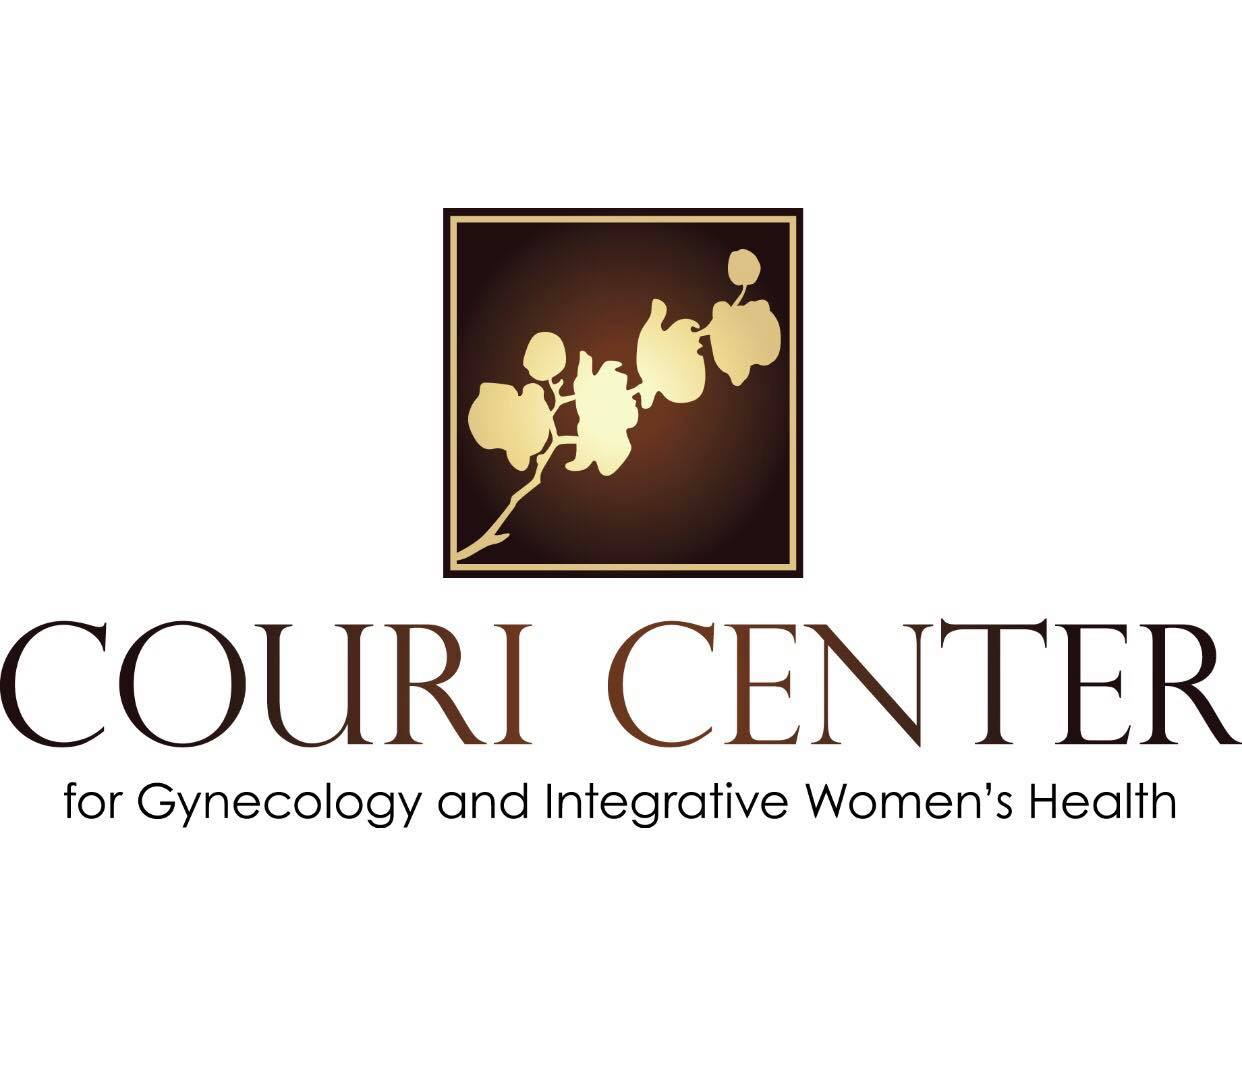 Couri Center logo